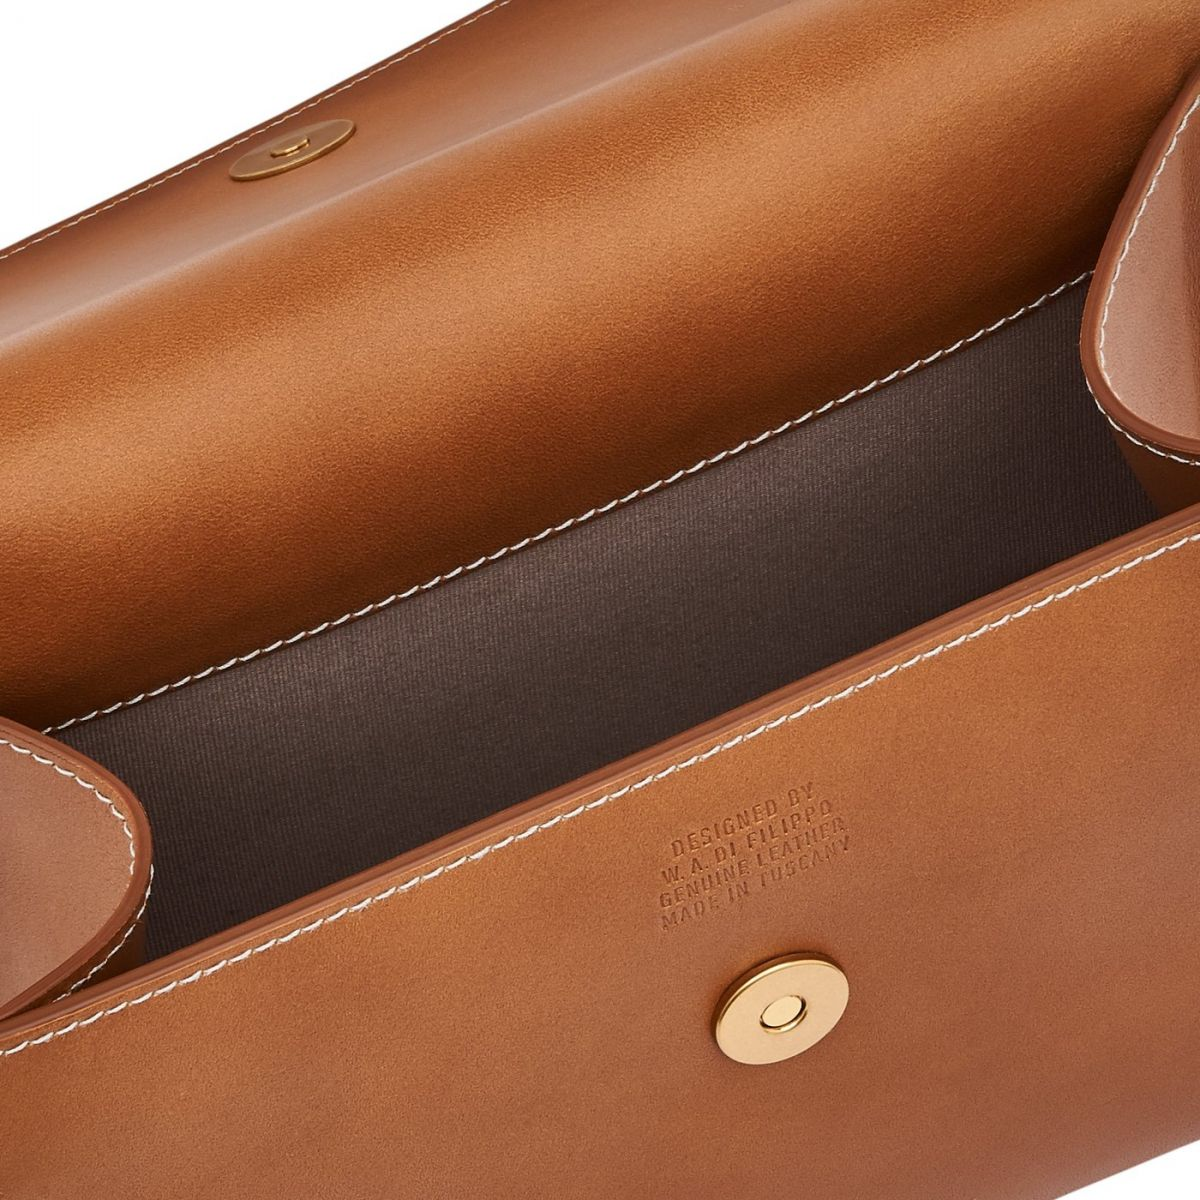 Stufa - Women's Crossbody Bag Fifty On in Cowhide Leather BCR223 color Natural | Details